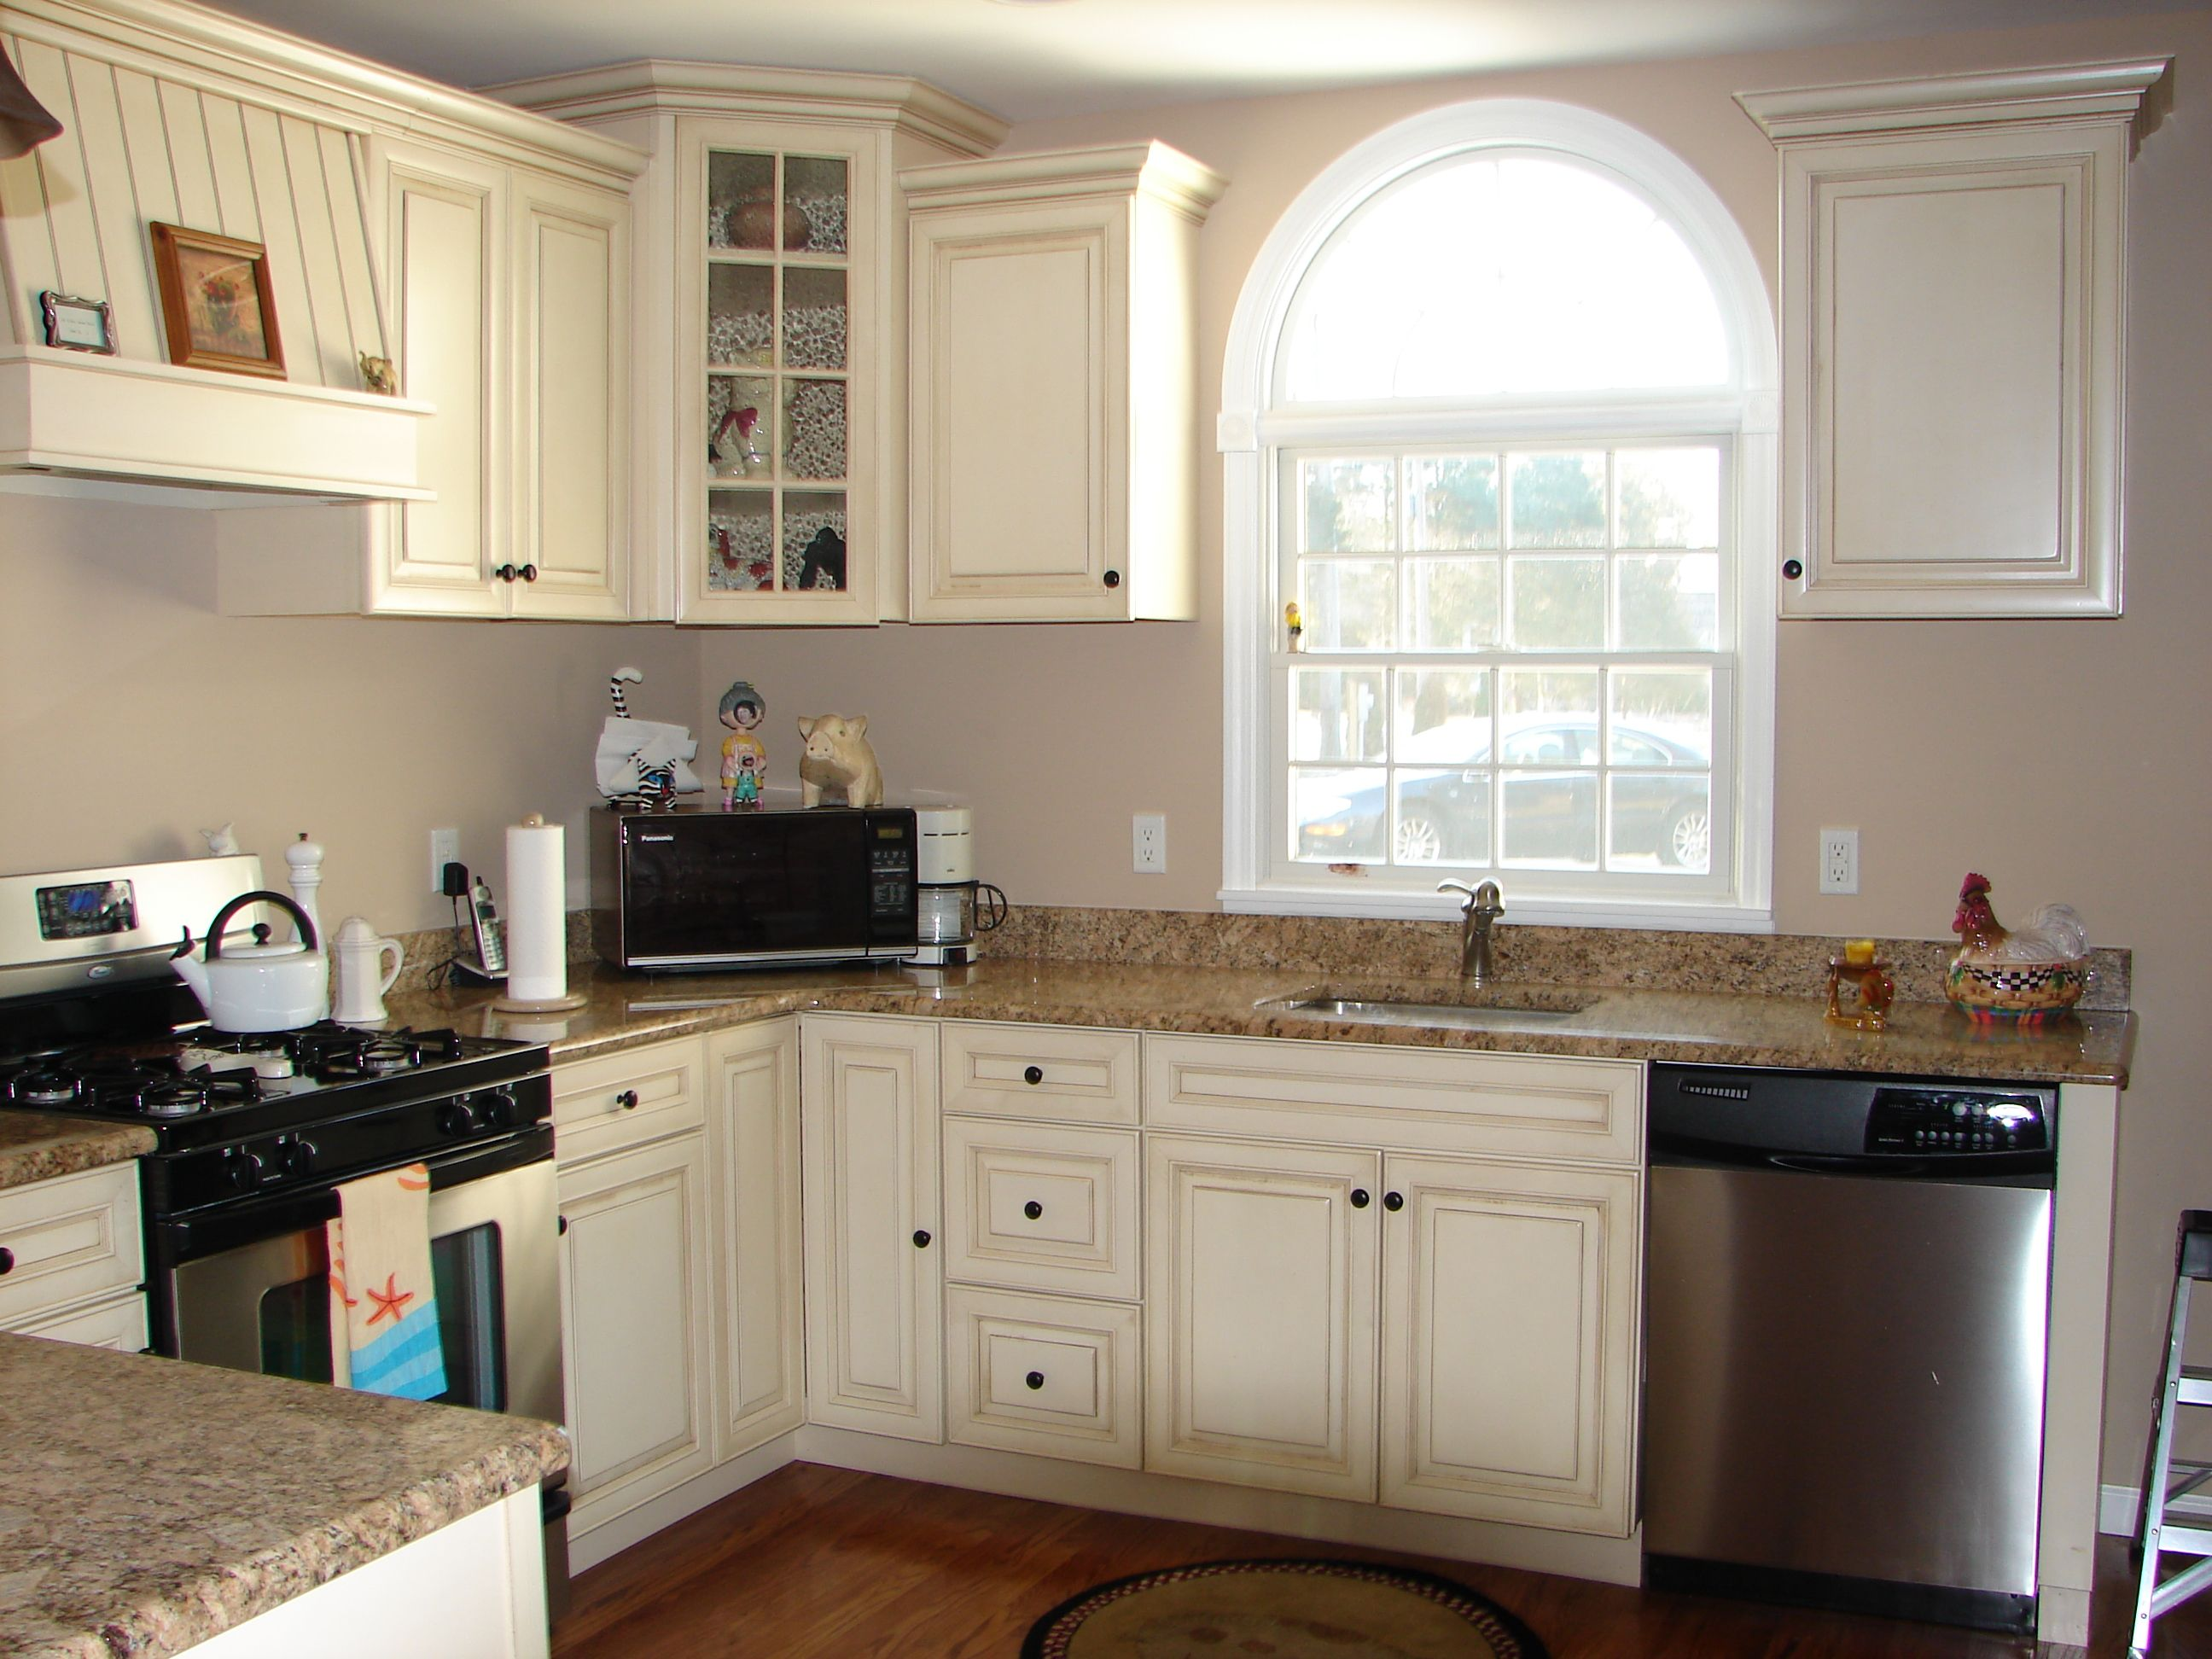 Kitchens Baths Grey Kitchen Walls Cream Colored Kitchen Cabinets Kitchen Colors